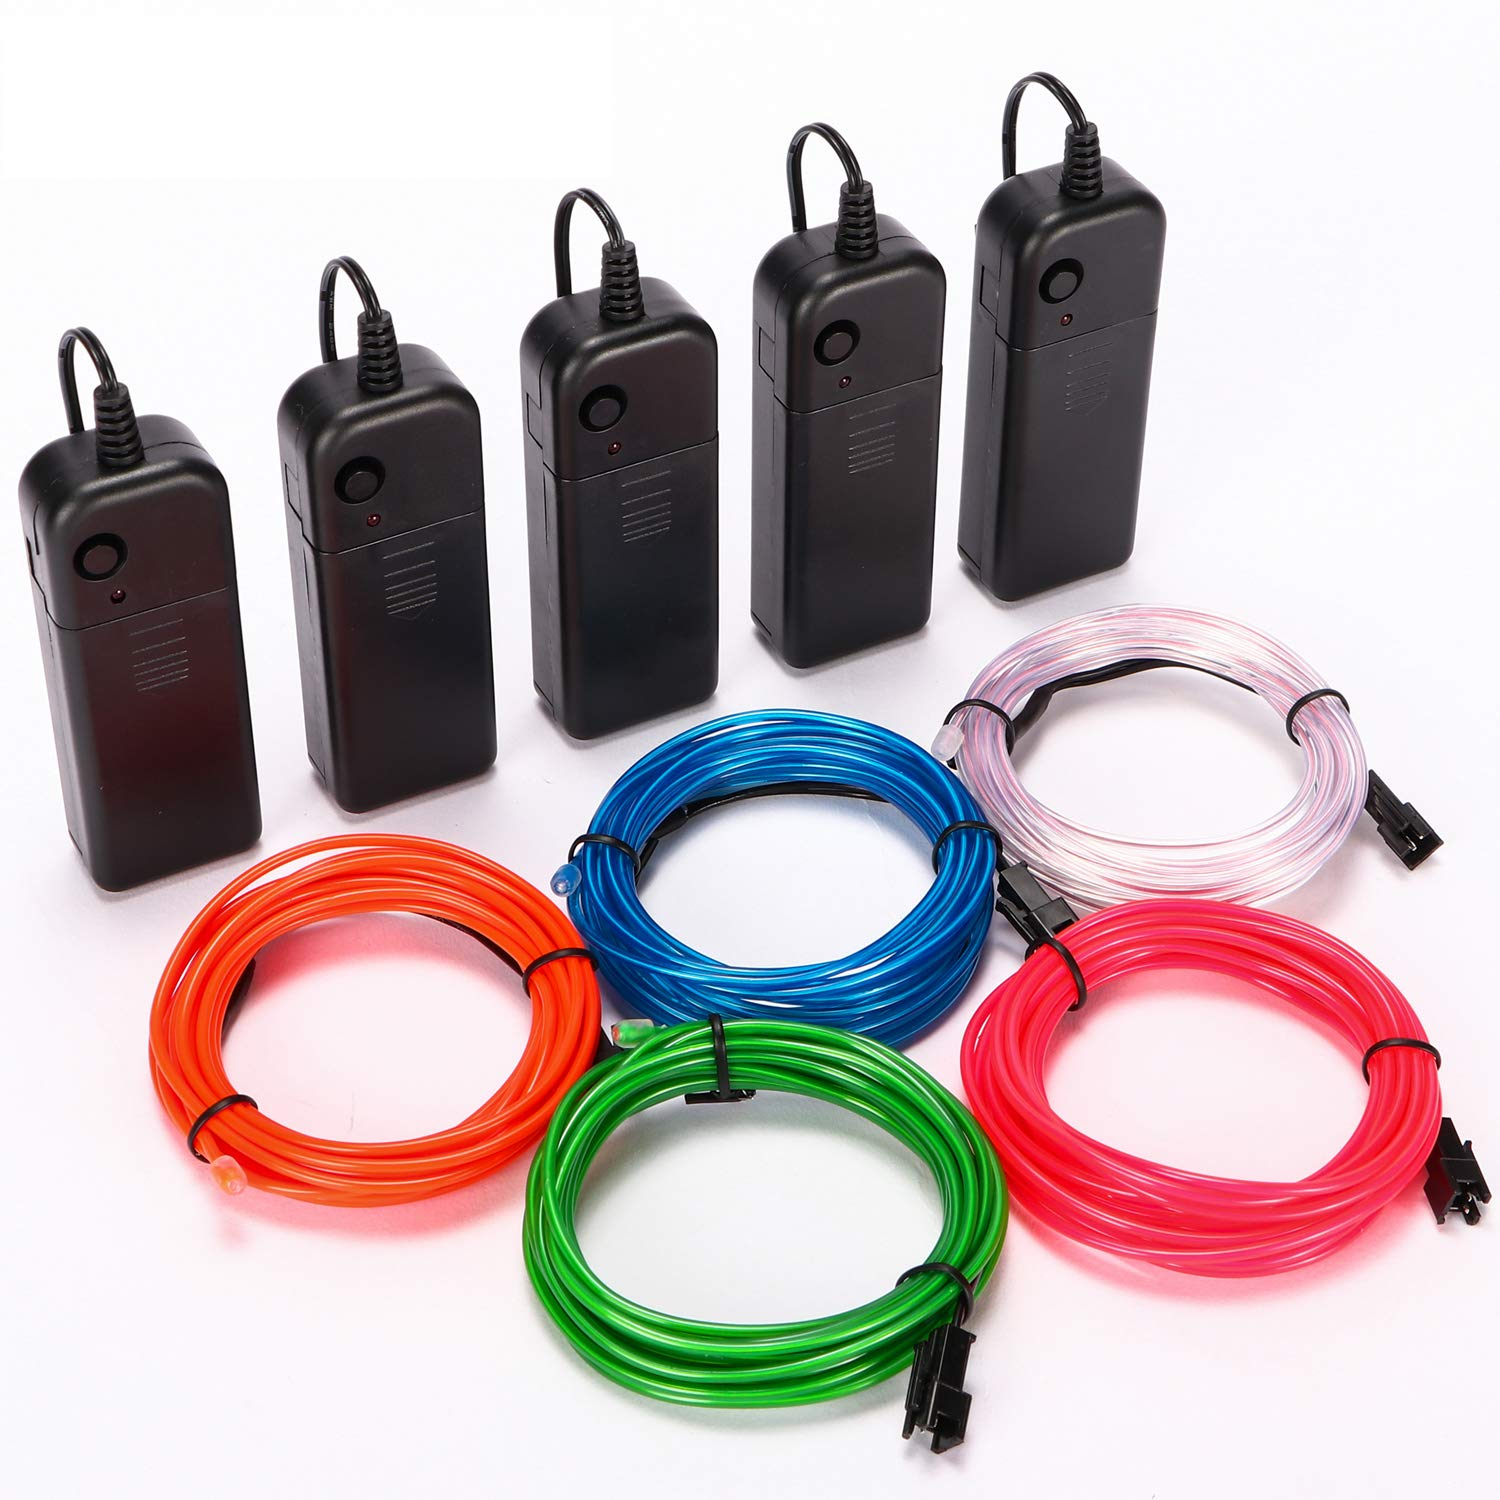 WAPIKE EL Wire Kit 10ft,Portable Neon Lights for Parties-Five Colors to Choose from(Red, Green, Pink, Blue, White) White)